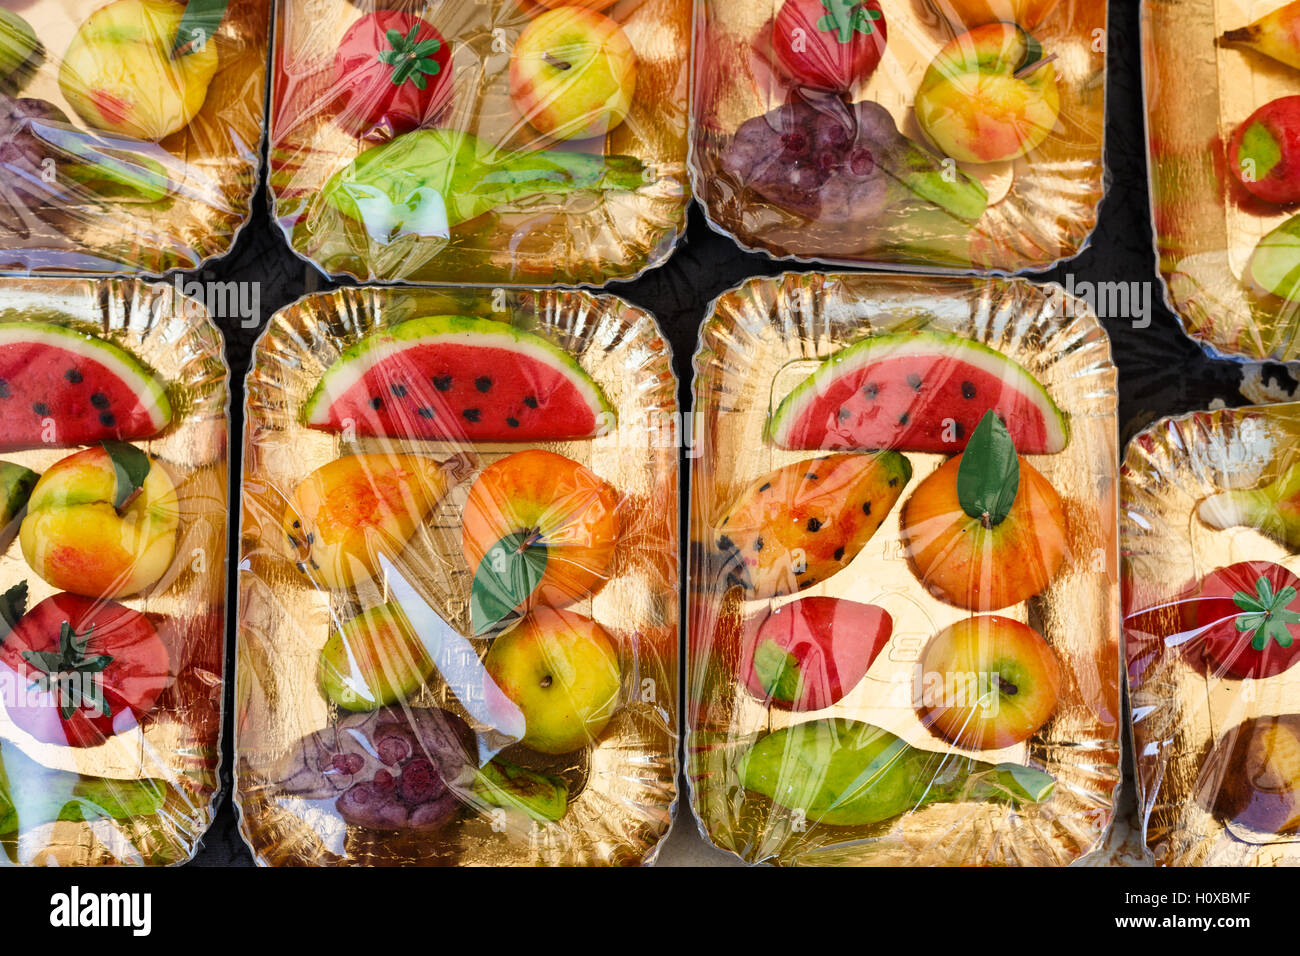 Marzipan fruits on a market stall, Sicily - Stock Image